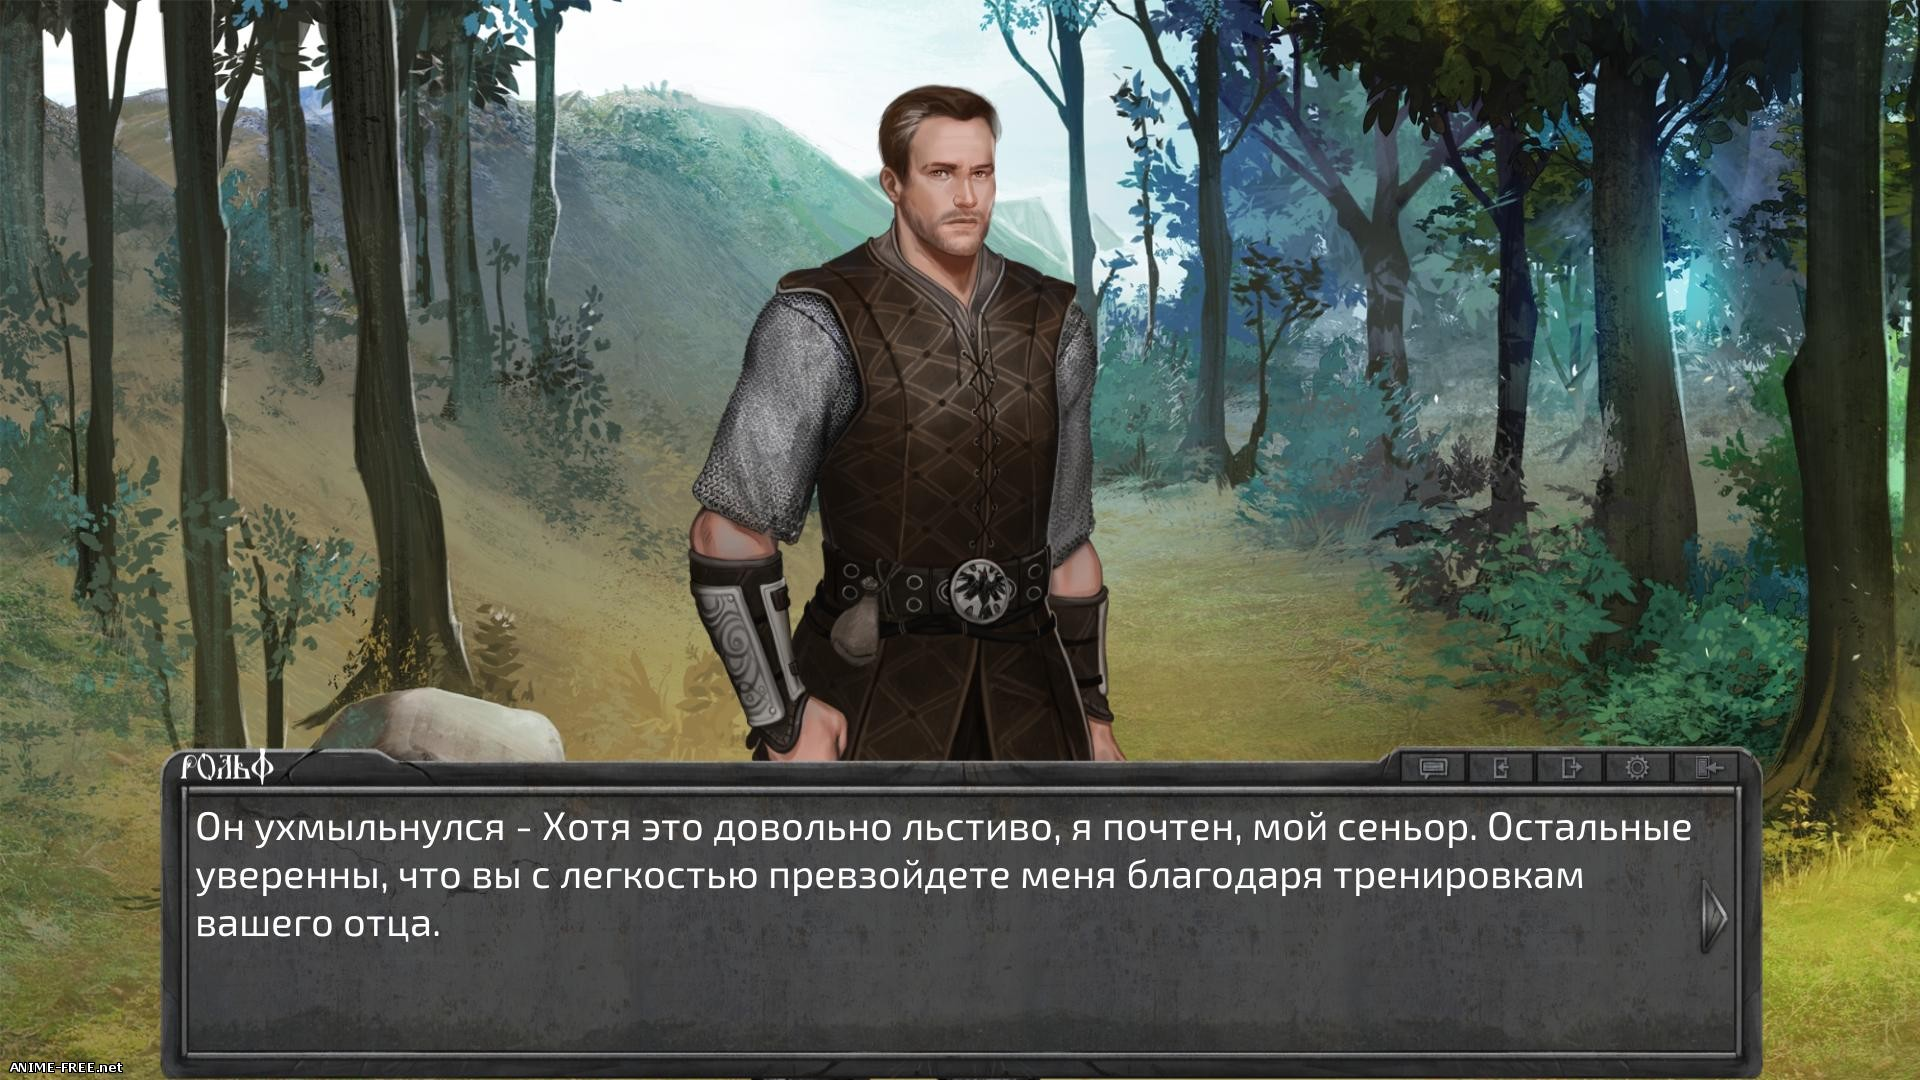 Chronicles of Lonvenholm / Хроники Лонвенхольма [2016] [Uncen] [ADV] [RUS] H-Game